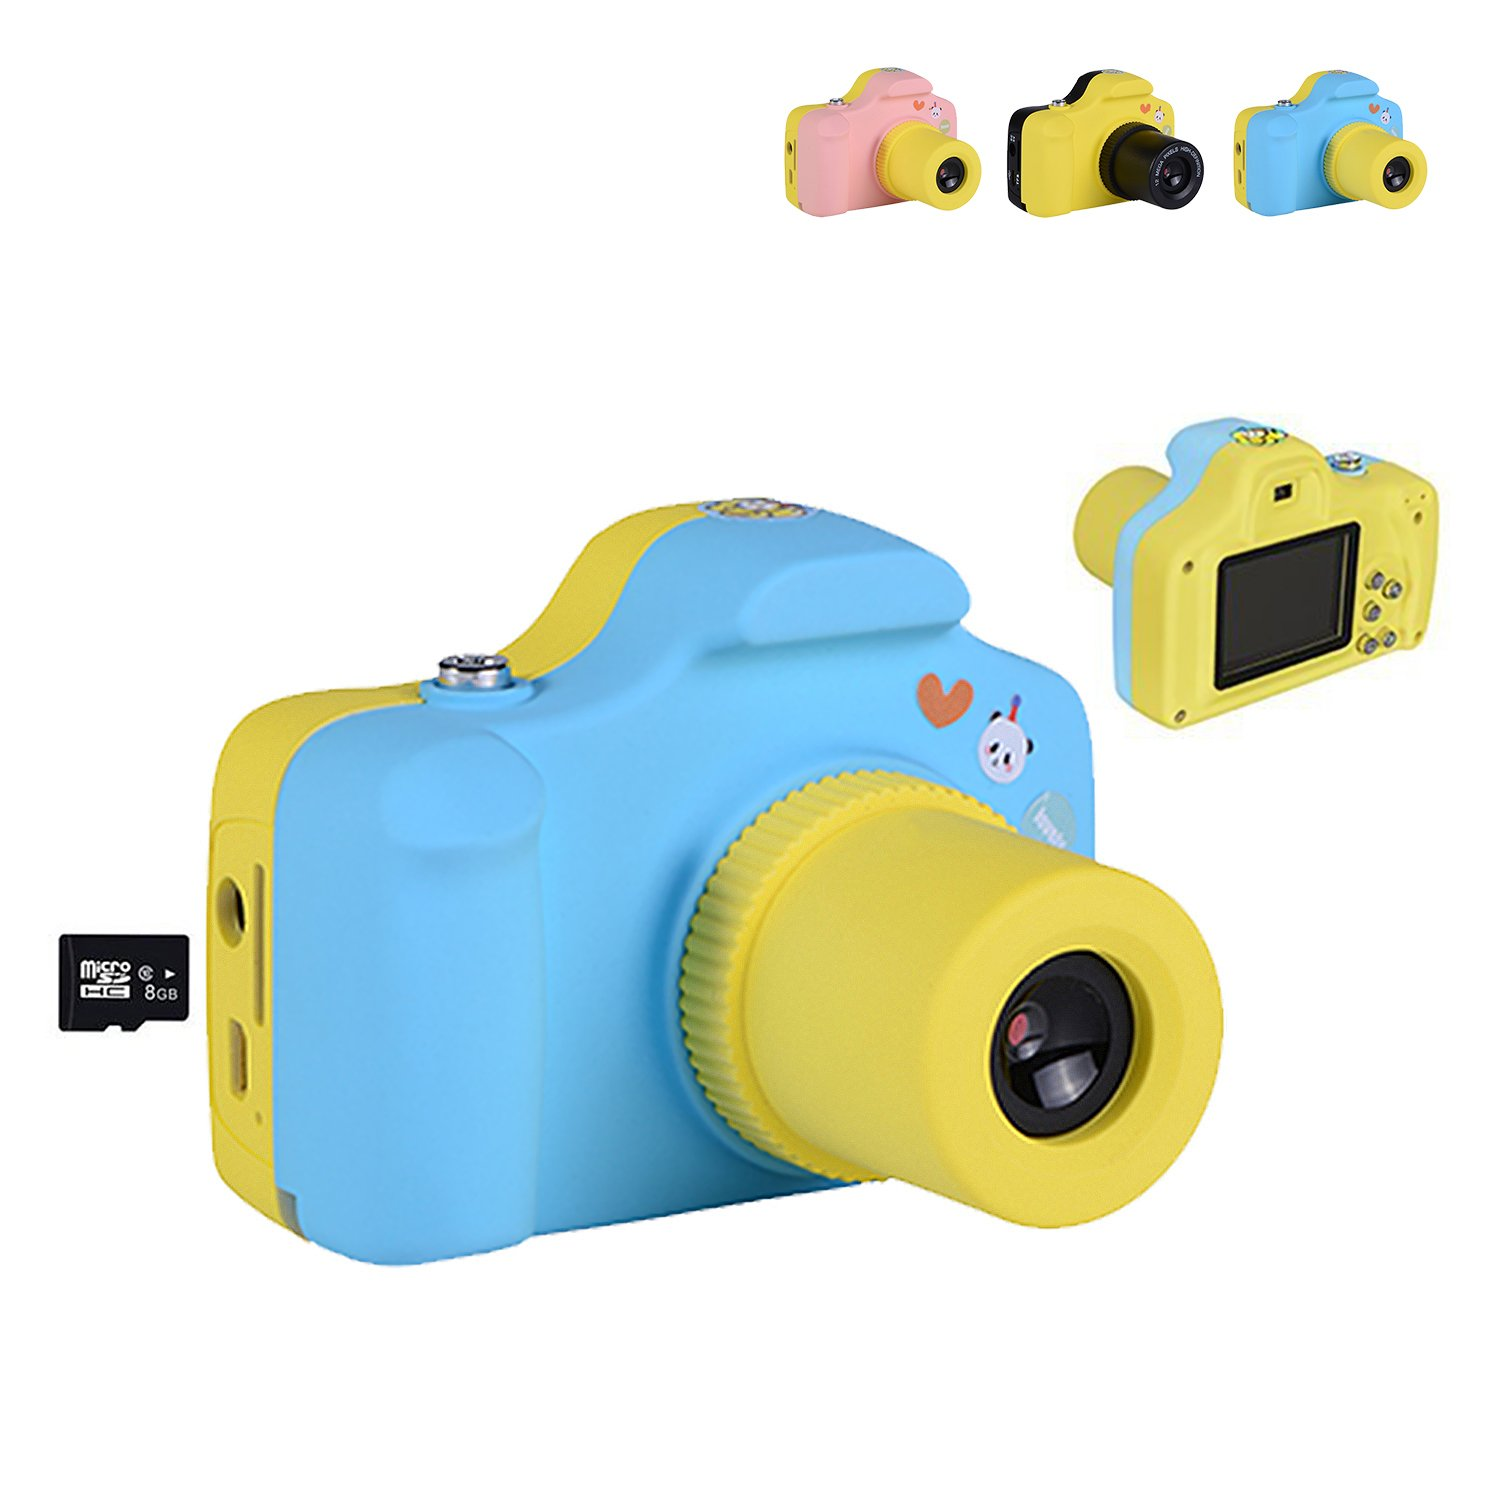 Children Digital Camera Mini 1.5 Inch Screen for Kids 21 Mega Pixels HD Digital Camera Handheld Micro Digital Camcorder Indoor Outdoor for Adults /Seniors / Kids Pink (8GB TF Card Included) (Blue8)